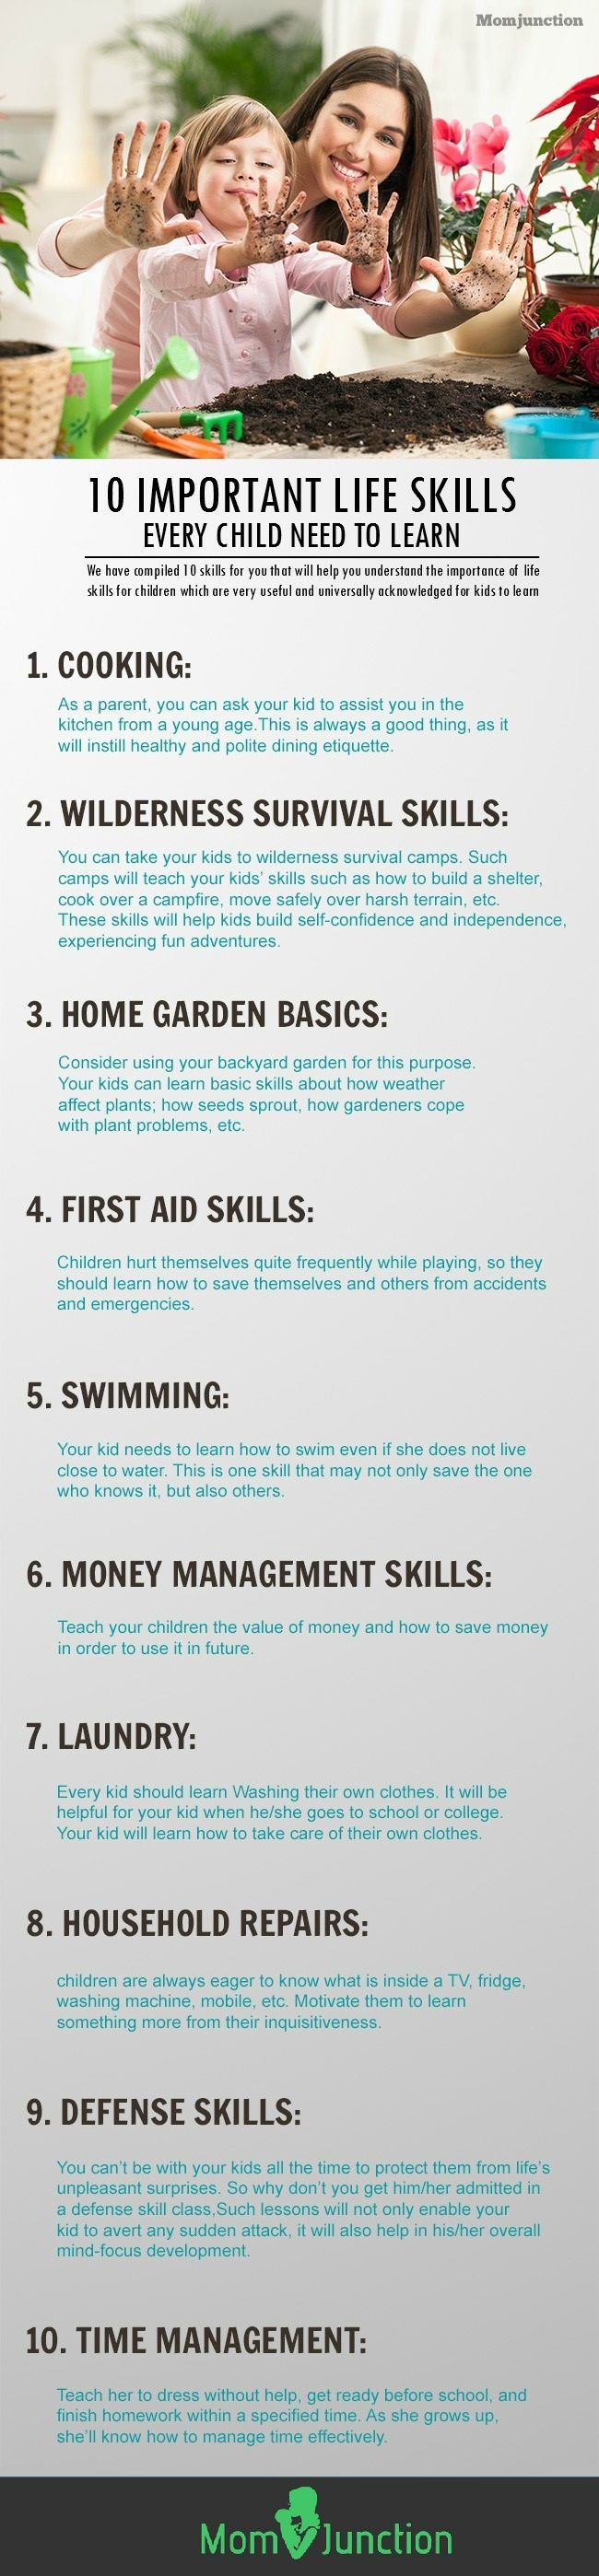 10 Important Tips To Teach Life Skills